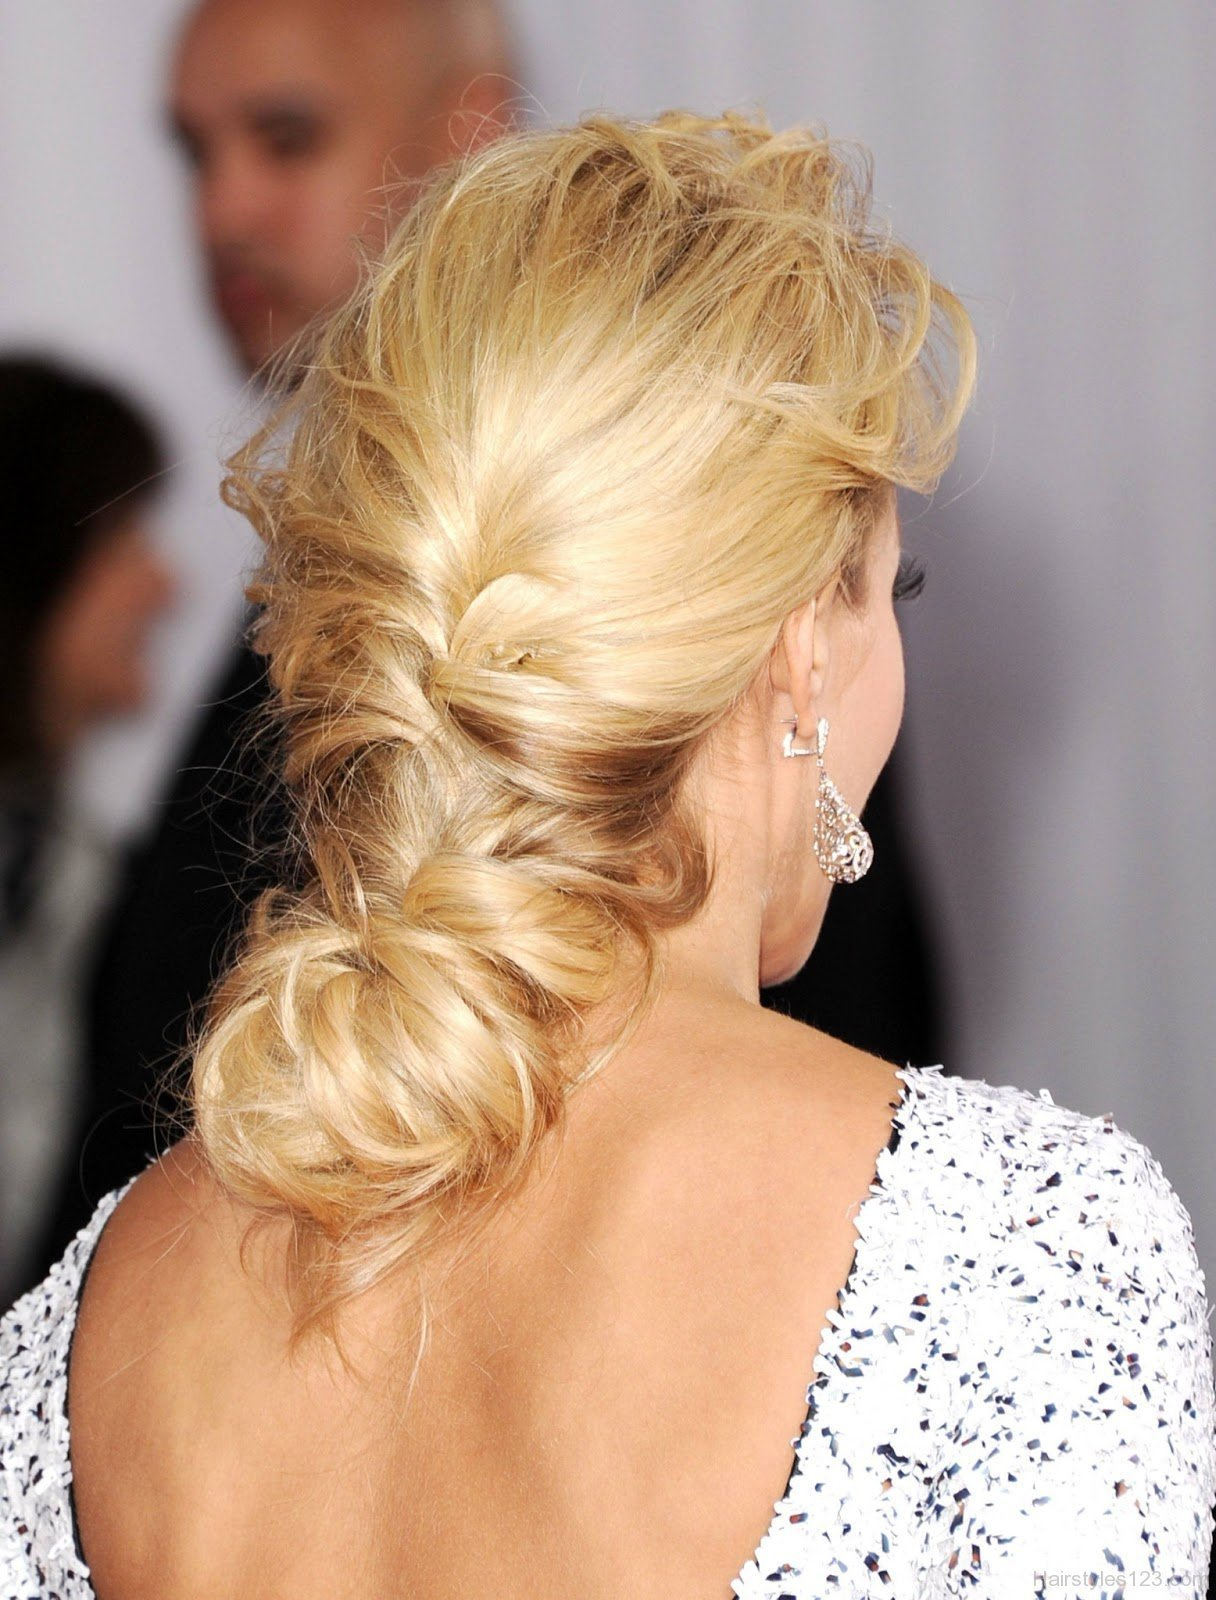 The Best Beautiful Prom Blonde Braided Hairstyle Pictures